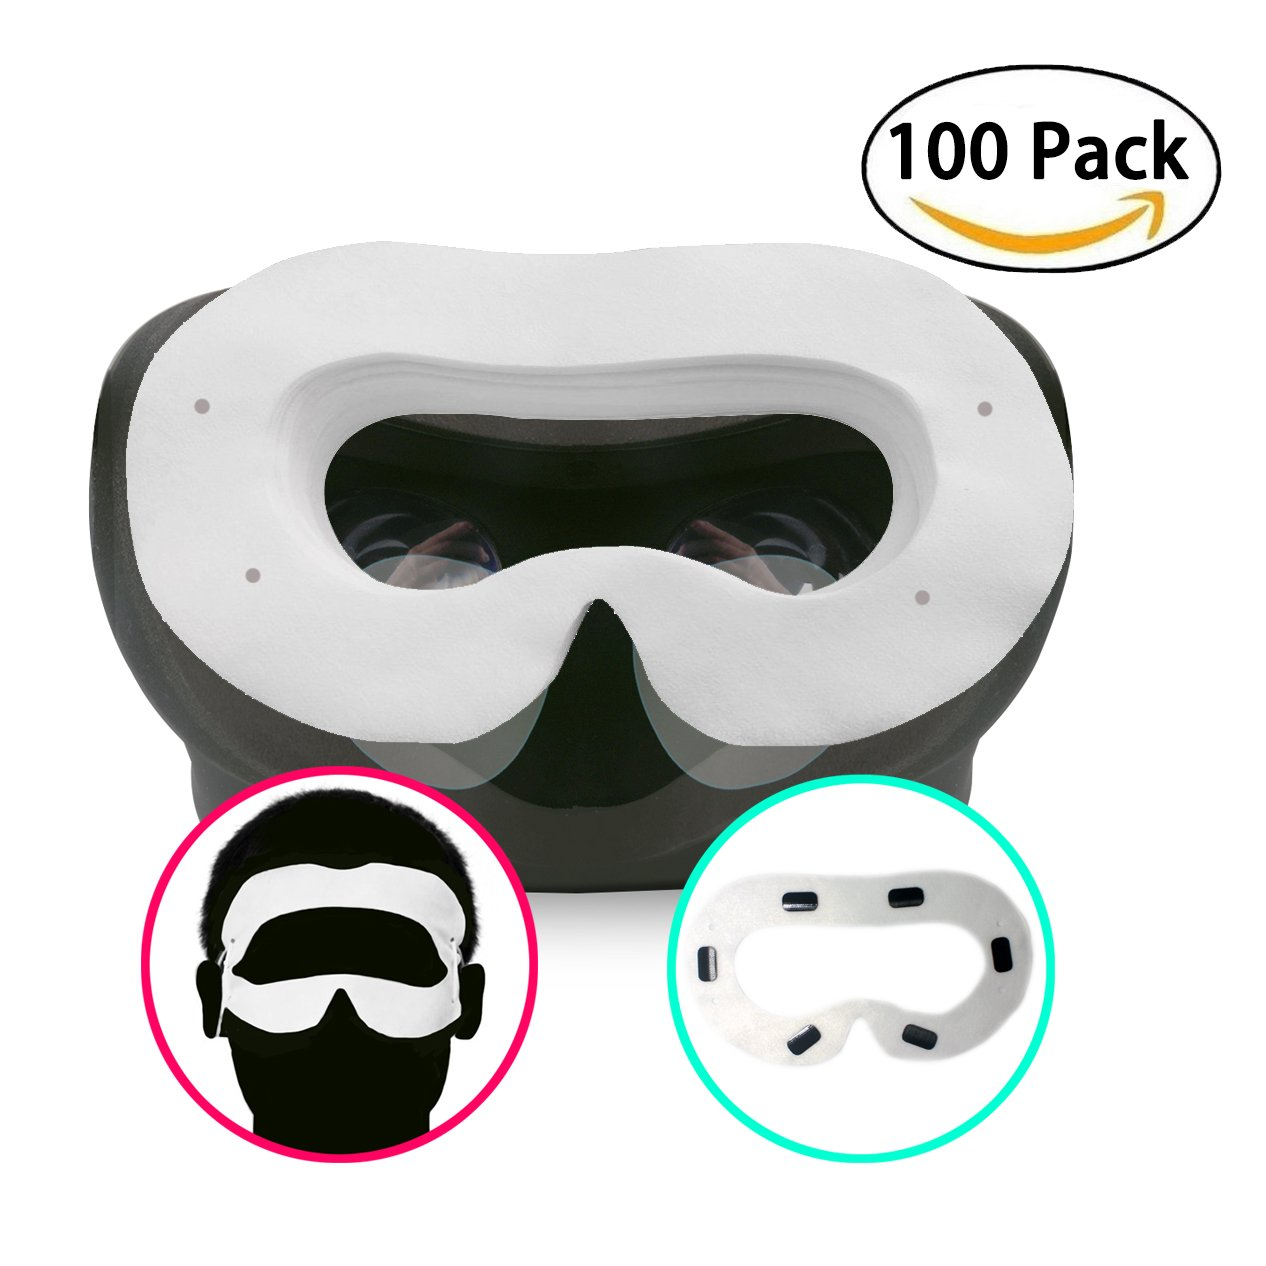 T&B Disposable Oculus Rift CV1 VR Mask 2 Ways To Use Hygiene White Replaceable Blinder Replacement Accessories for Oculus Rift Virtual Reality Headset 100 Pc